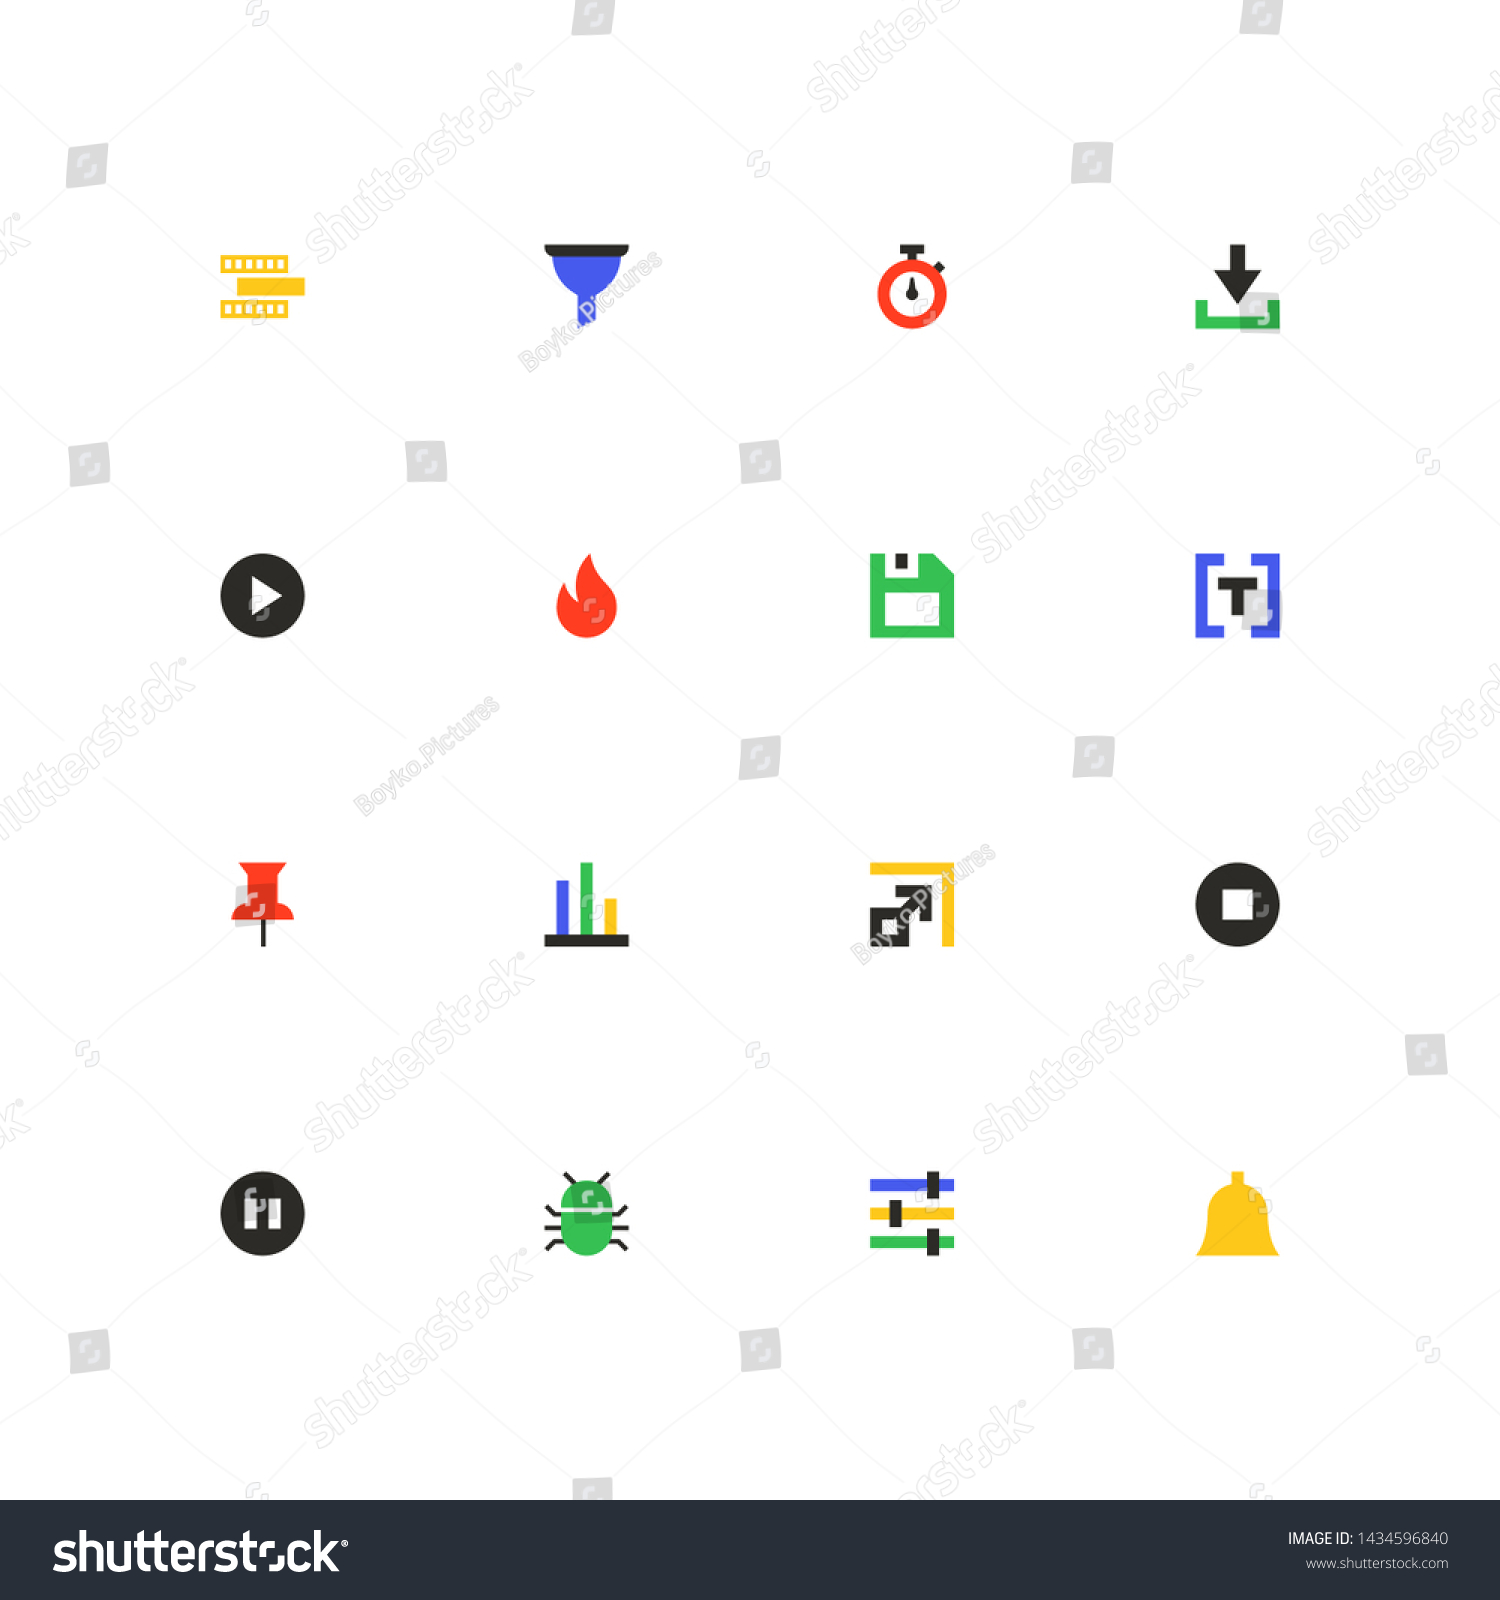 Business Protection Colorful Material Design Icons Stock